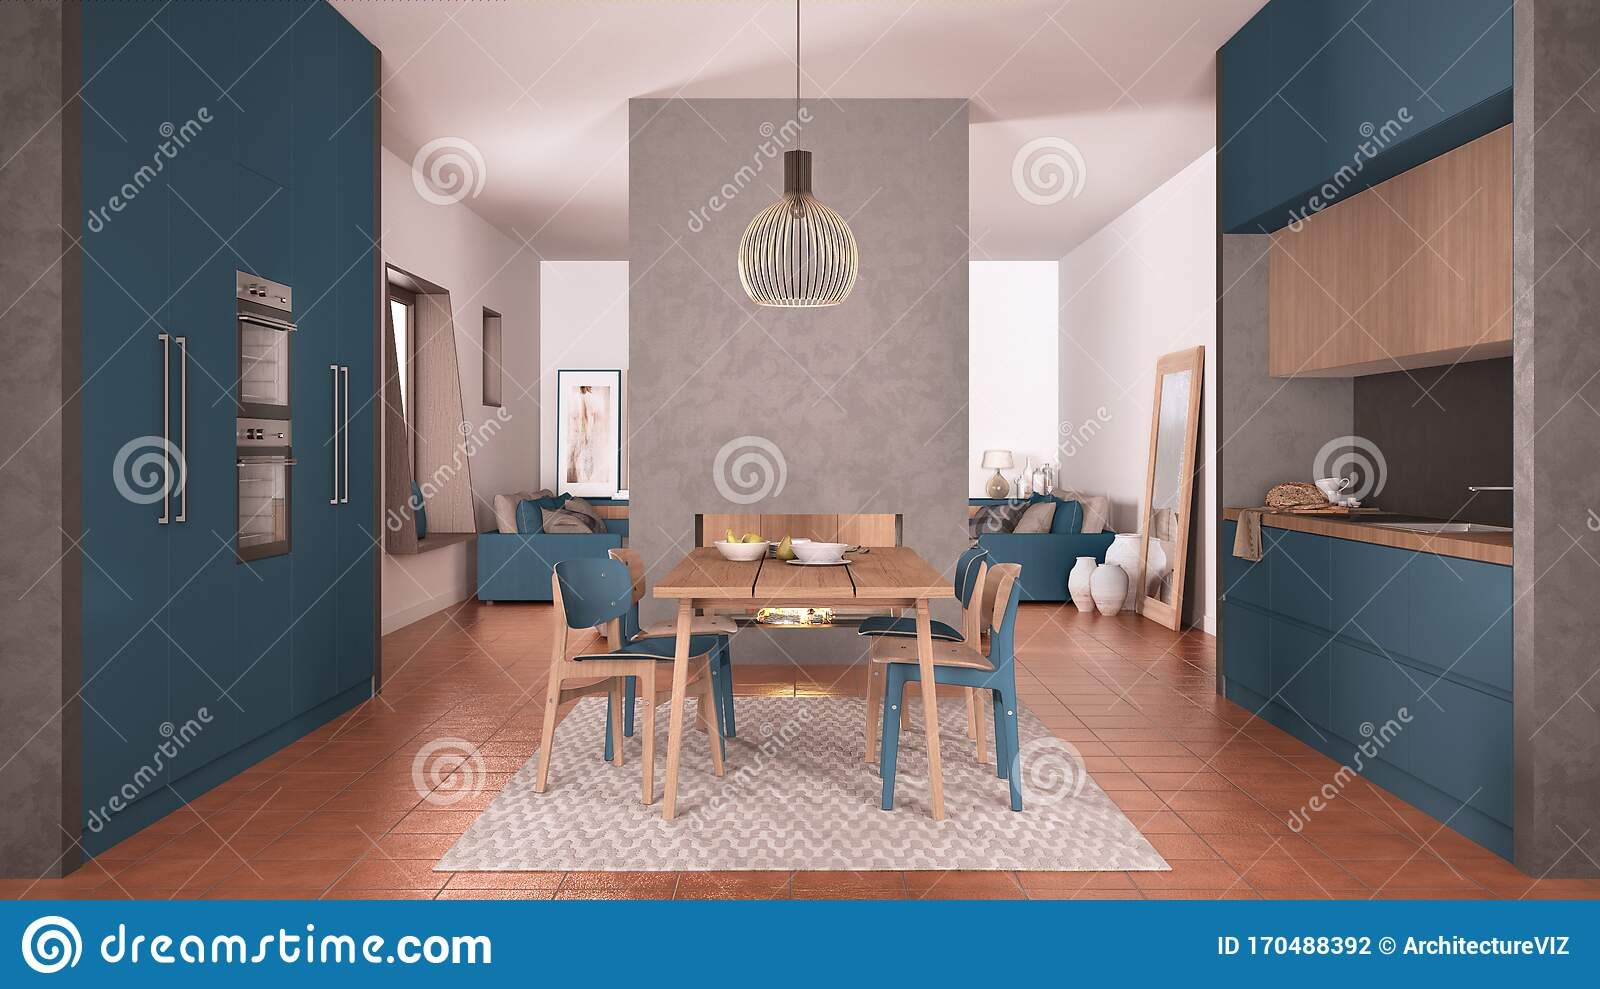 Cosy Blue And Wooden Kitchen With Dining Table And Chairs Concrete Modern Fireplace And Walls Living Room With Sofa Terracotta Stock Illustration Illustration Of Floor Home 170488392